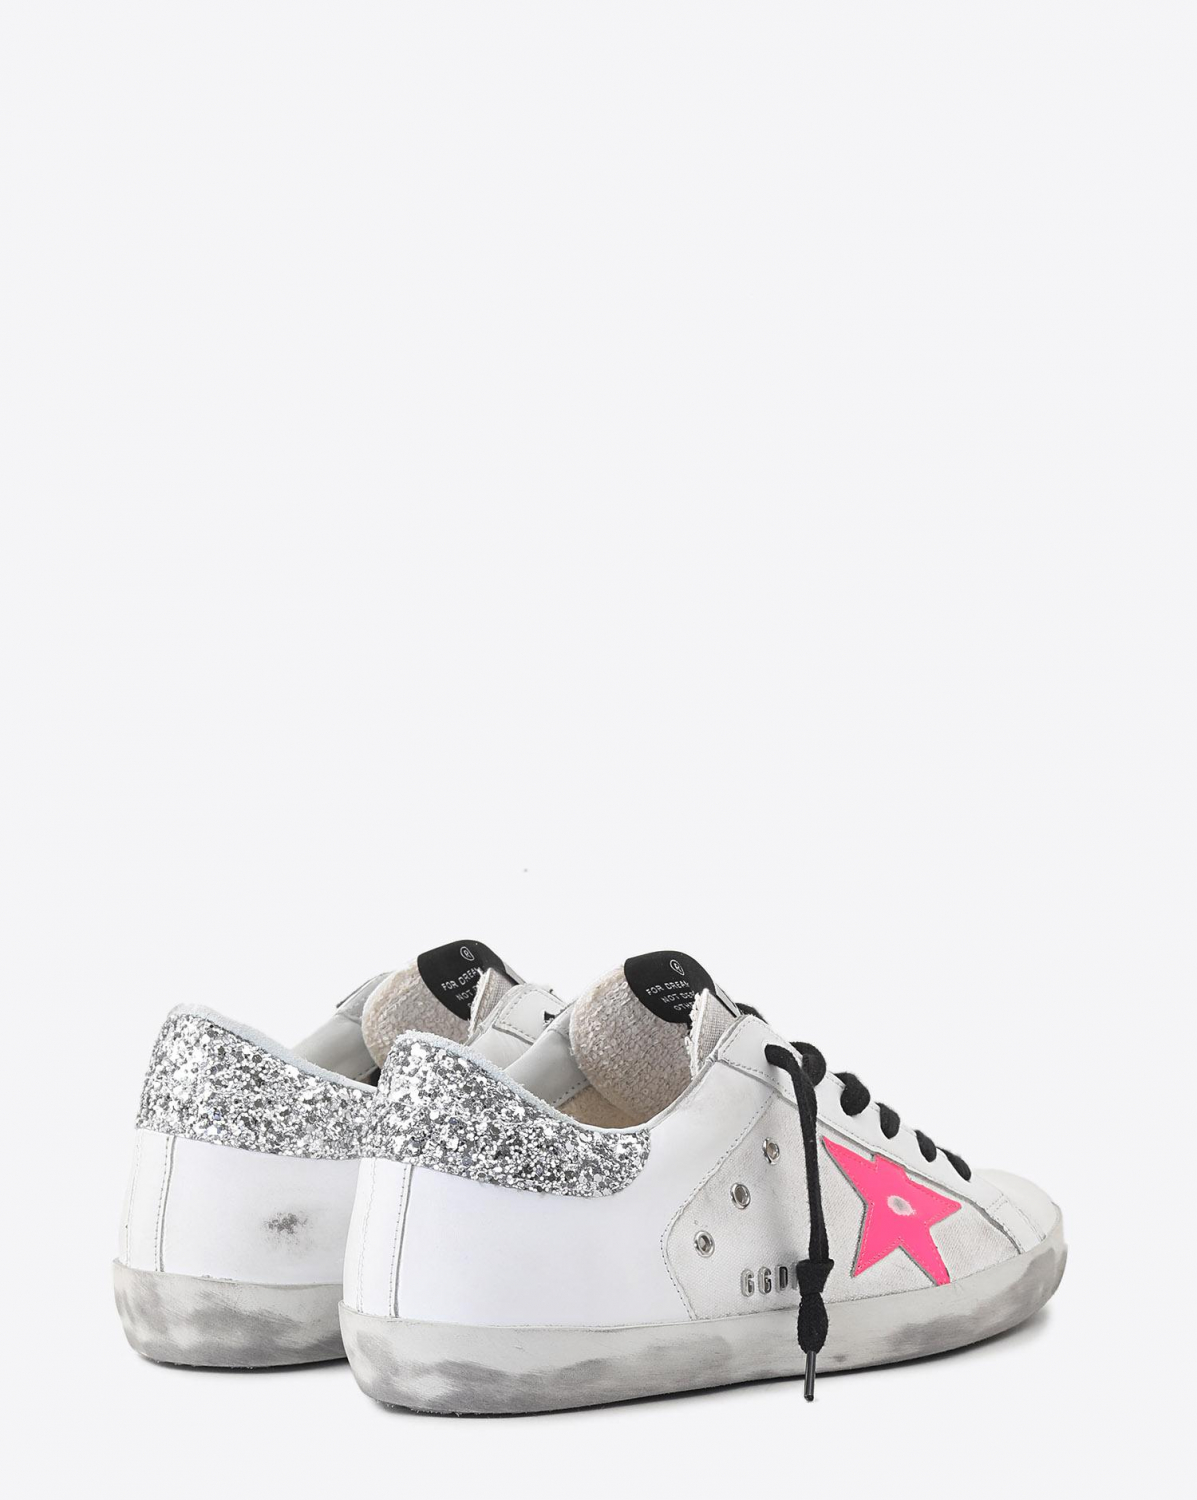 Golden Goose Woman Collection Sneakers Superstar - White Leather - White Canvas - Pink Star